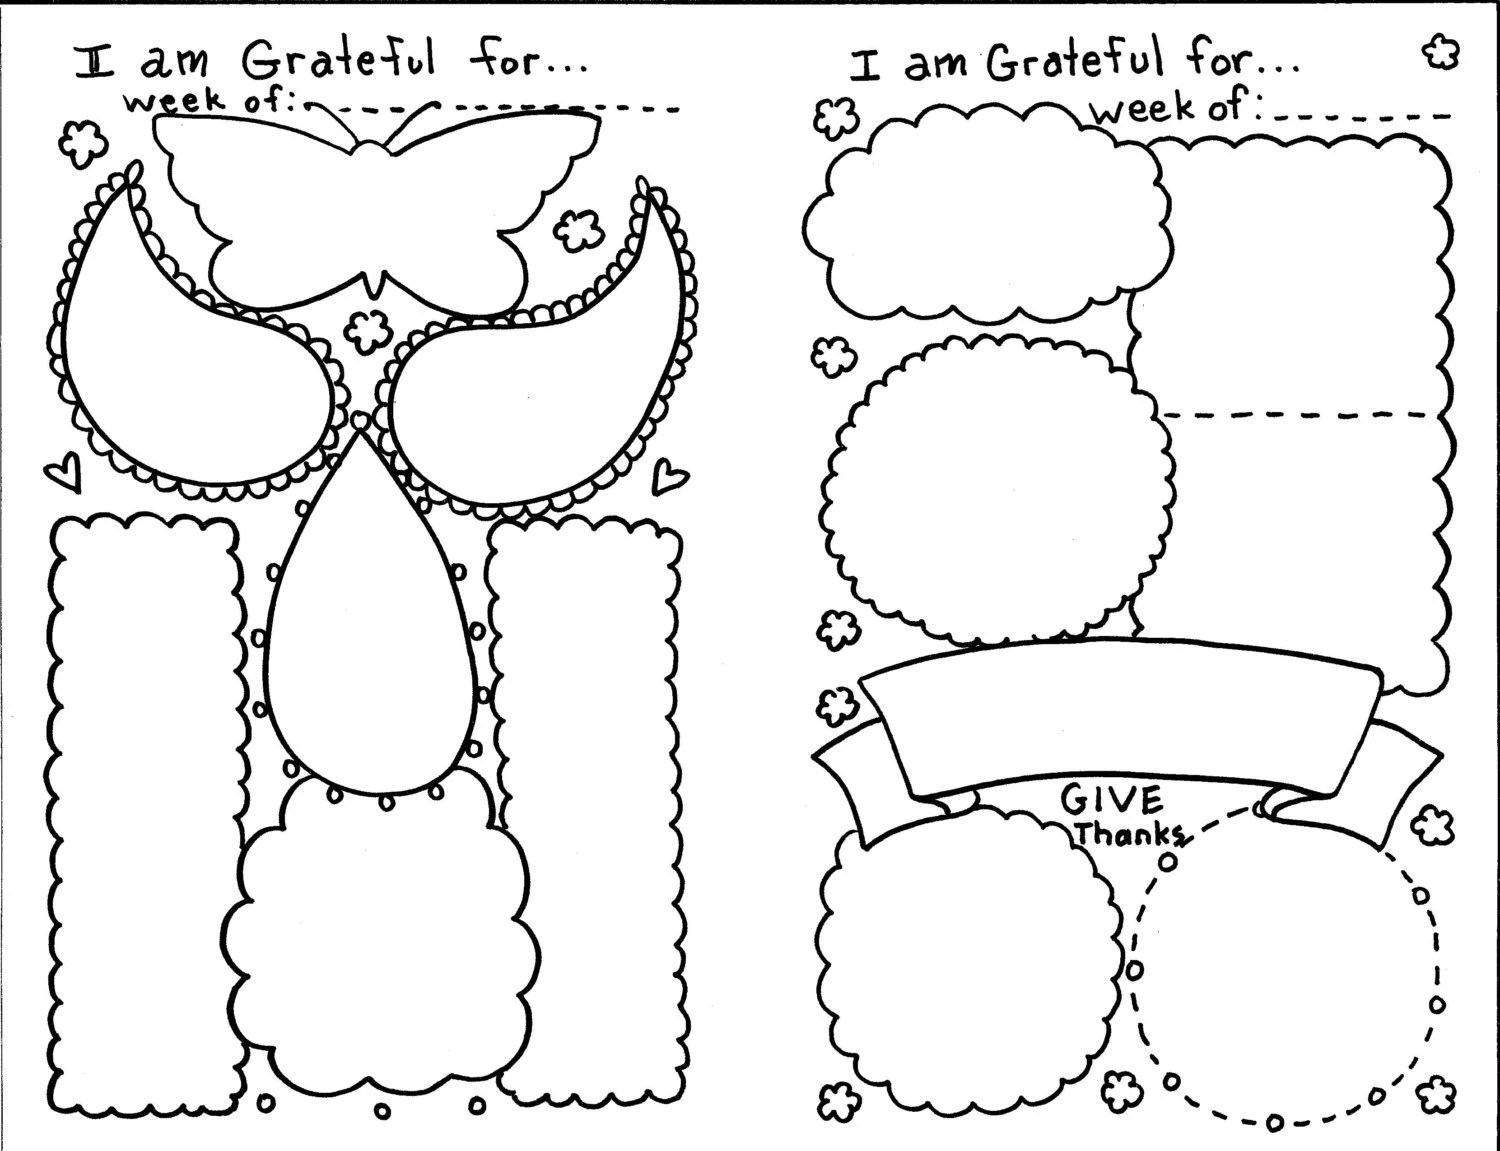 Instant Download Grateful Pages Journal Bible Study